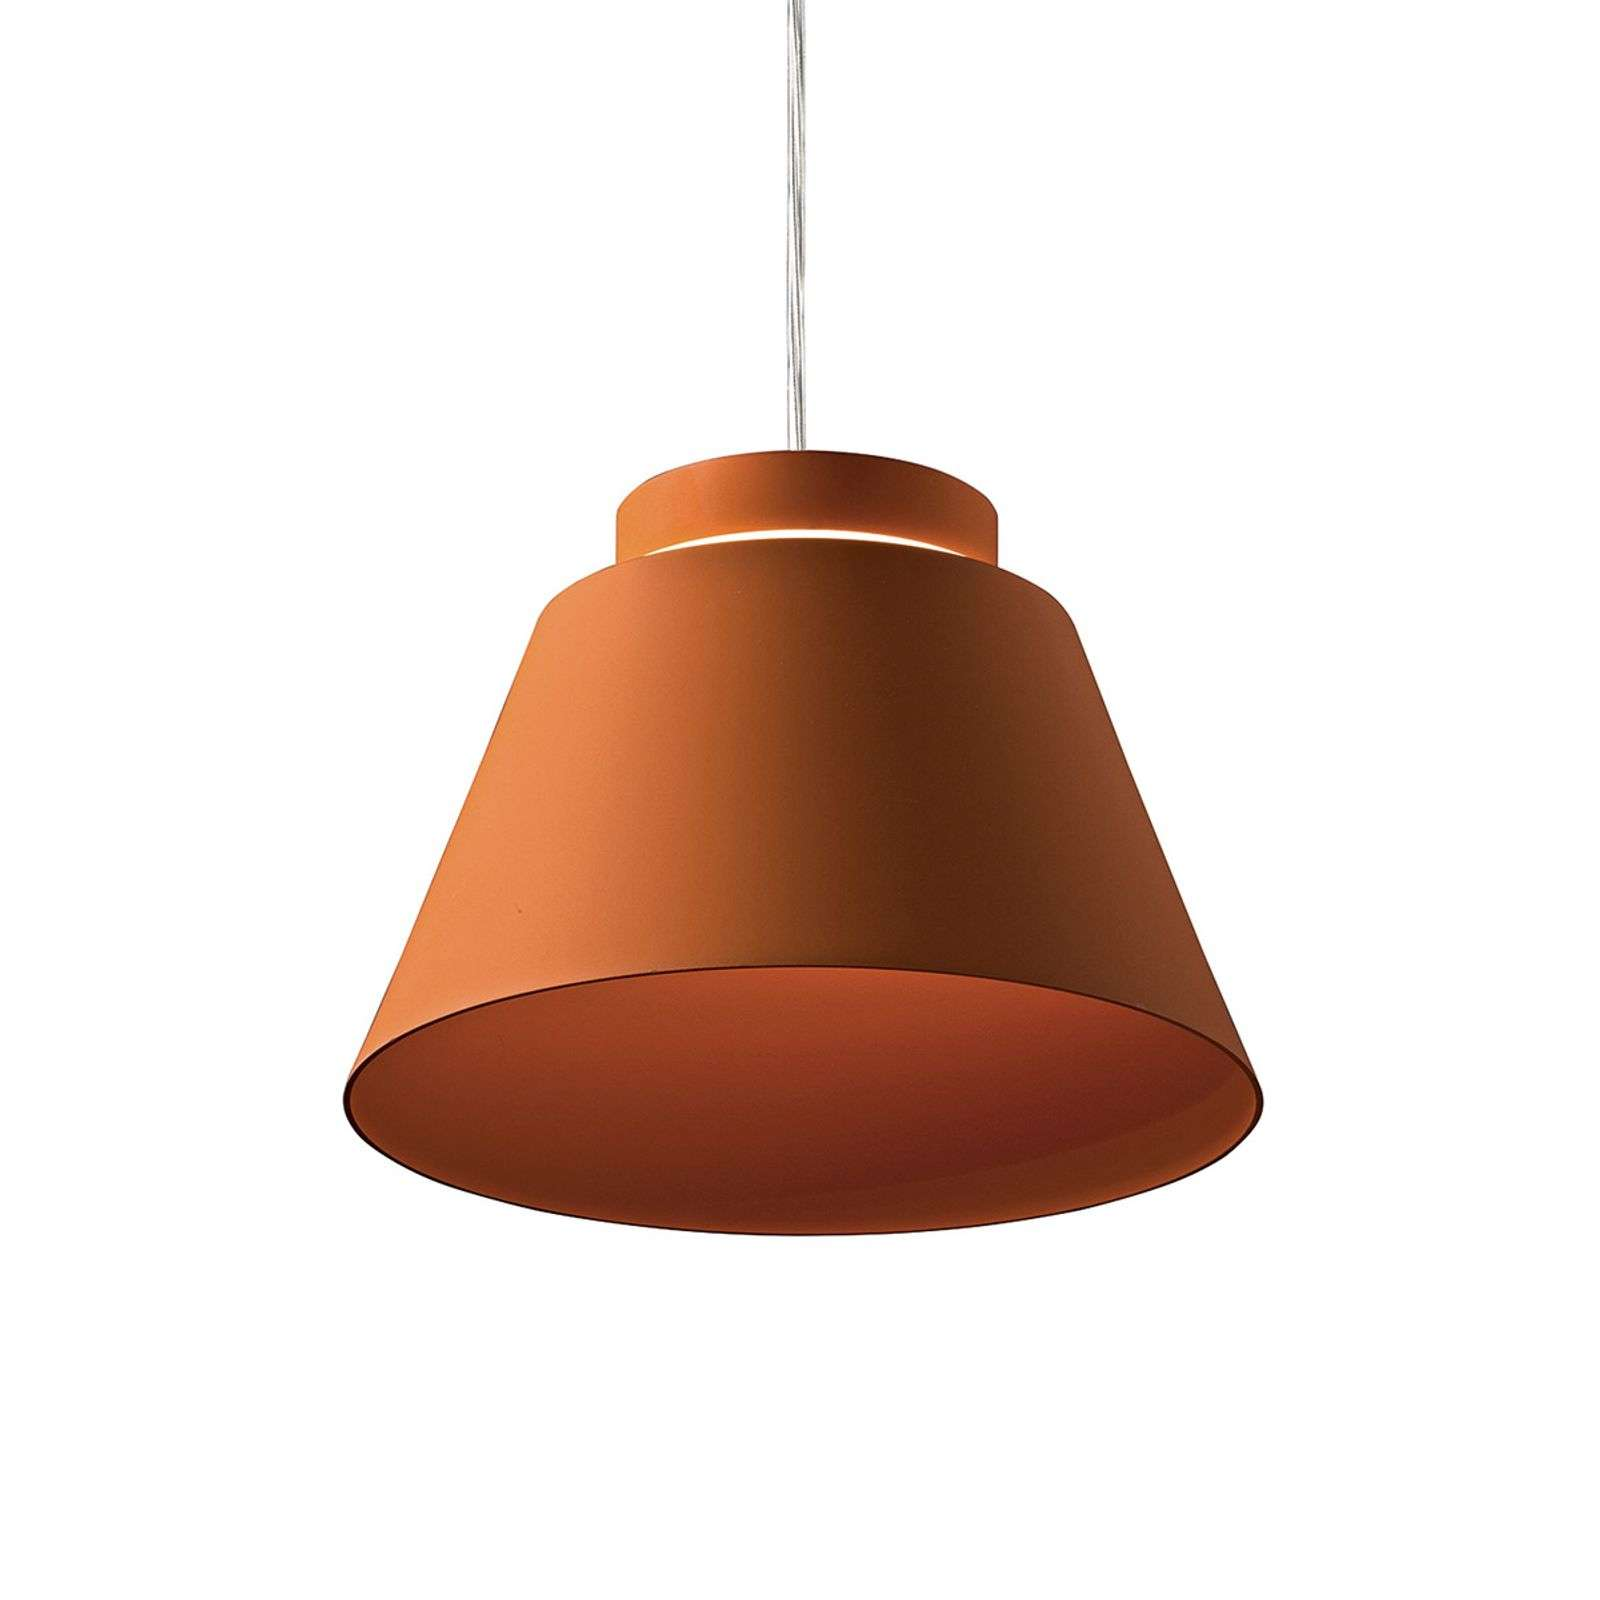 Suspension LED Lia, rouge brique